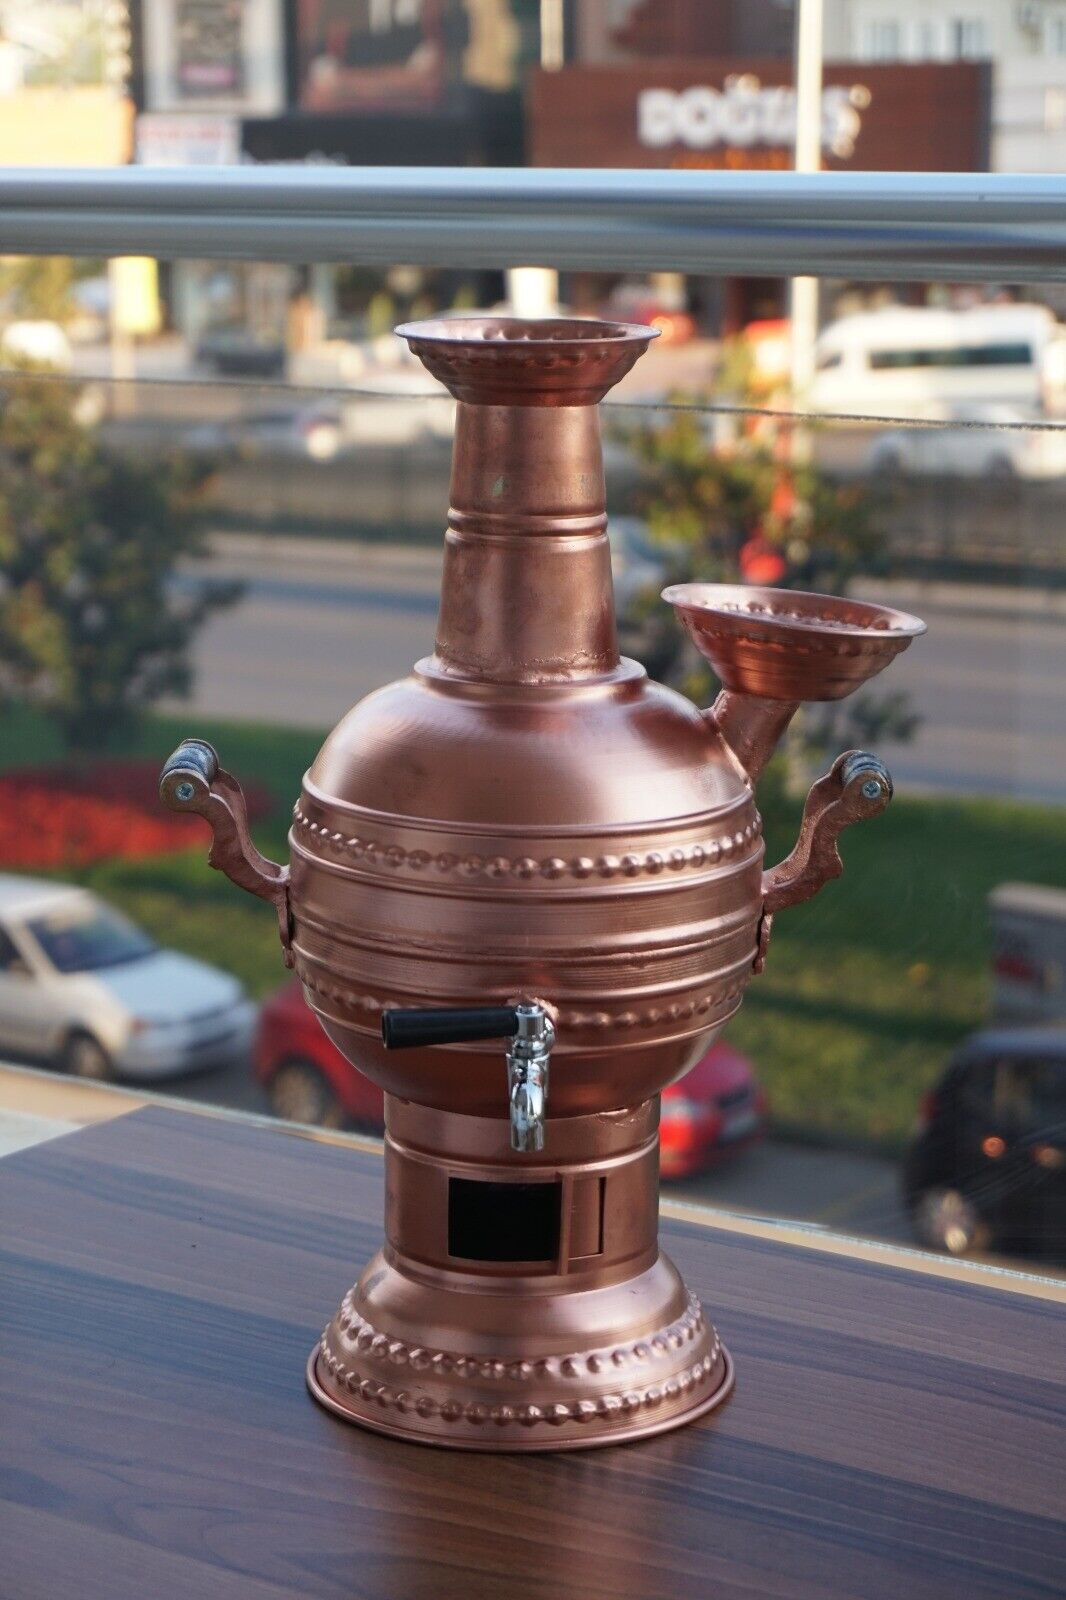 Copper Coal&Wood Samovar Camp Stove Tea Kettle Water Heater